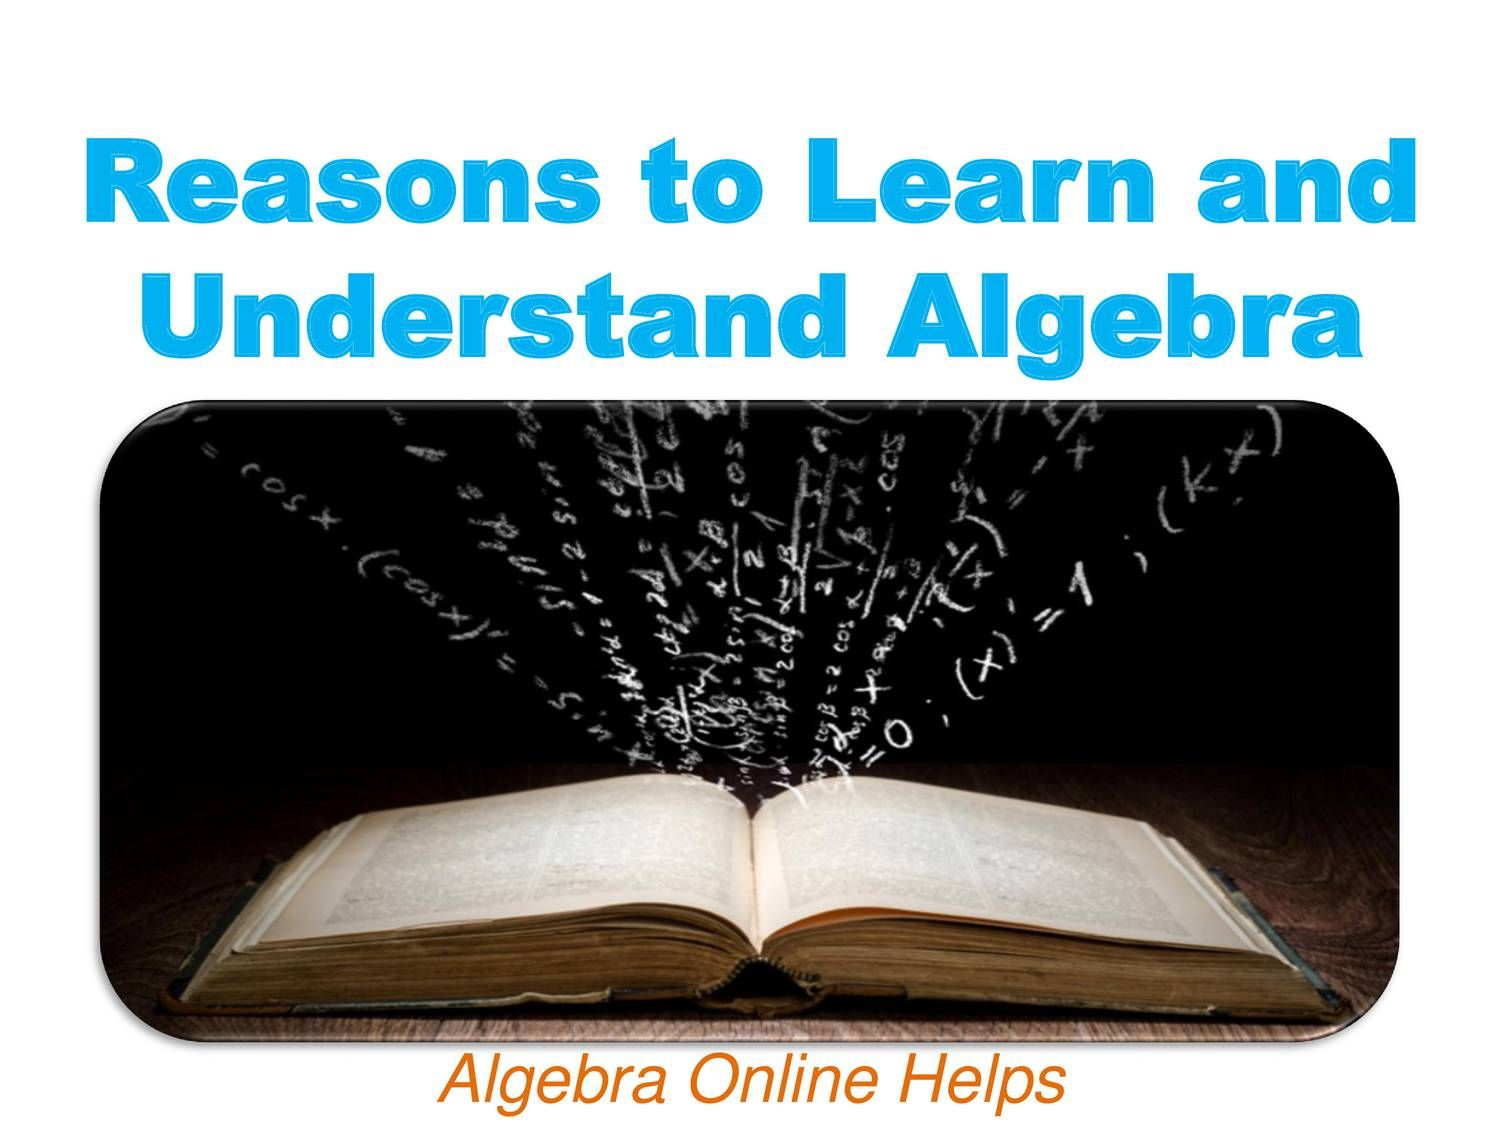 reasons to learn and understand algebra online math problem reasons to learn and understand algebra middot mathematics peoplemathematics solver onlineproblem